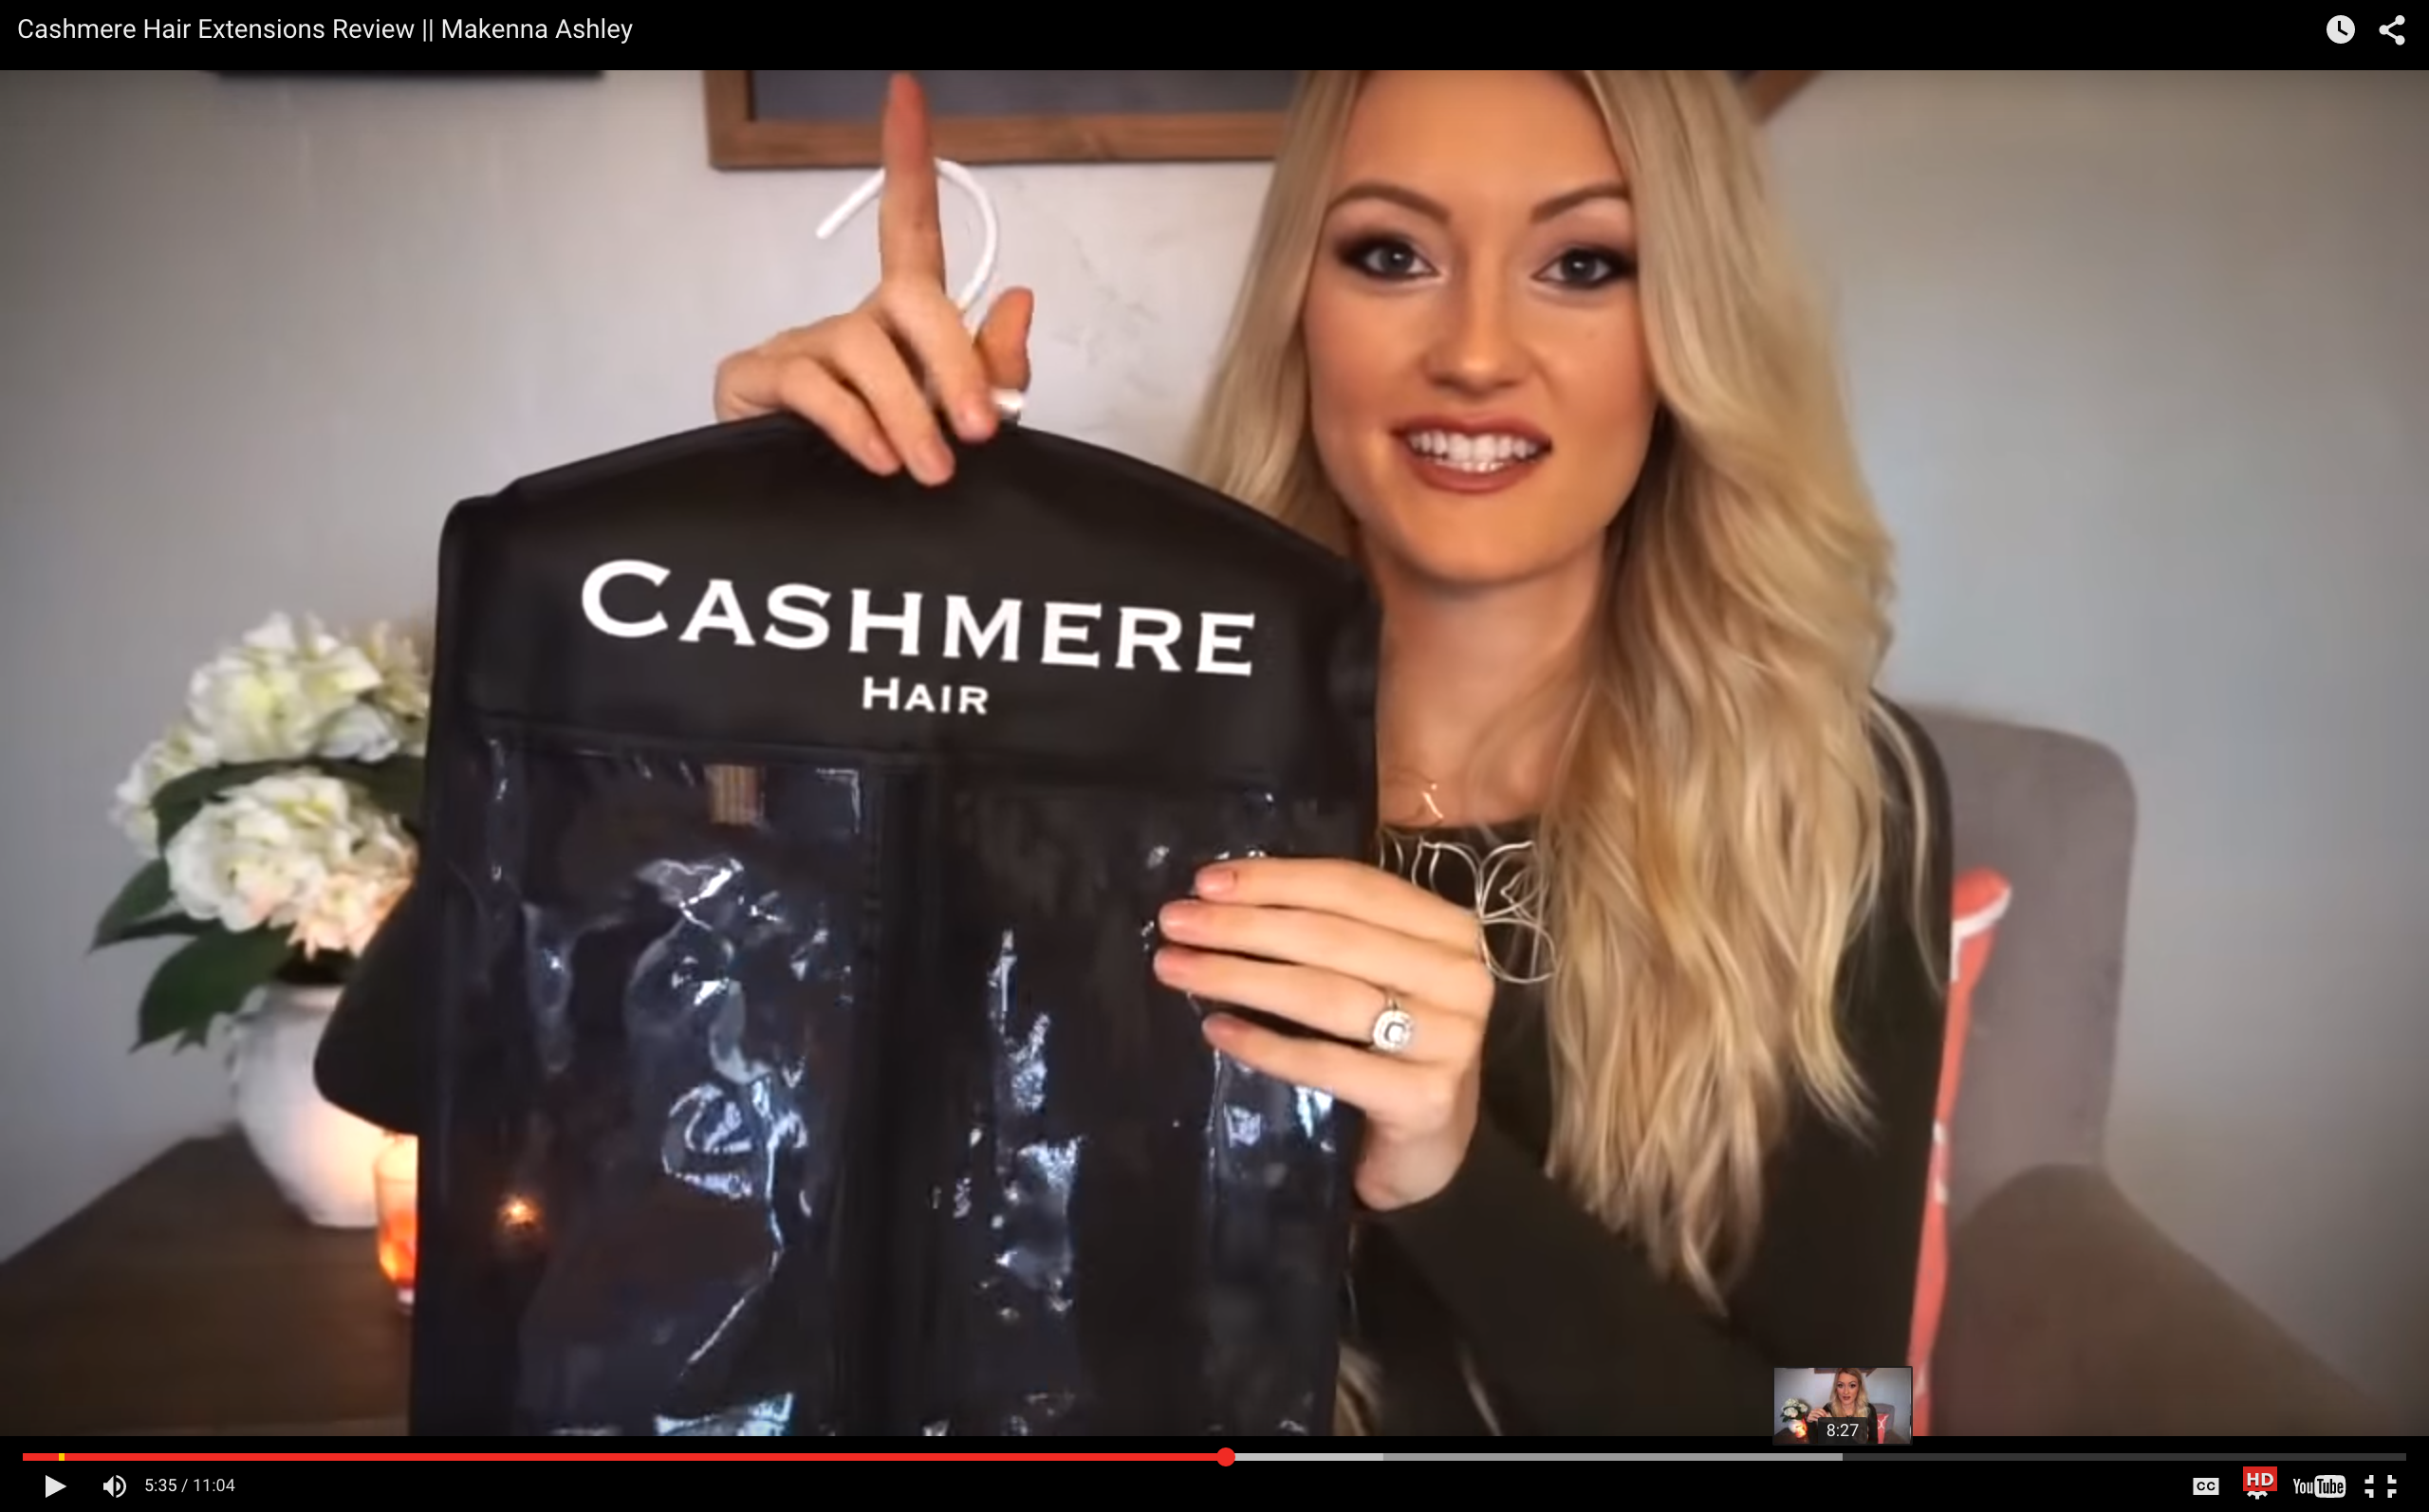 Cashmere Hair Review Video